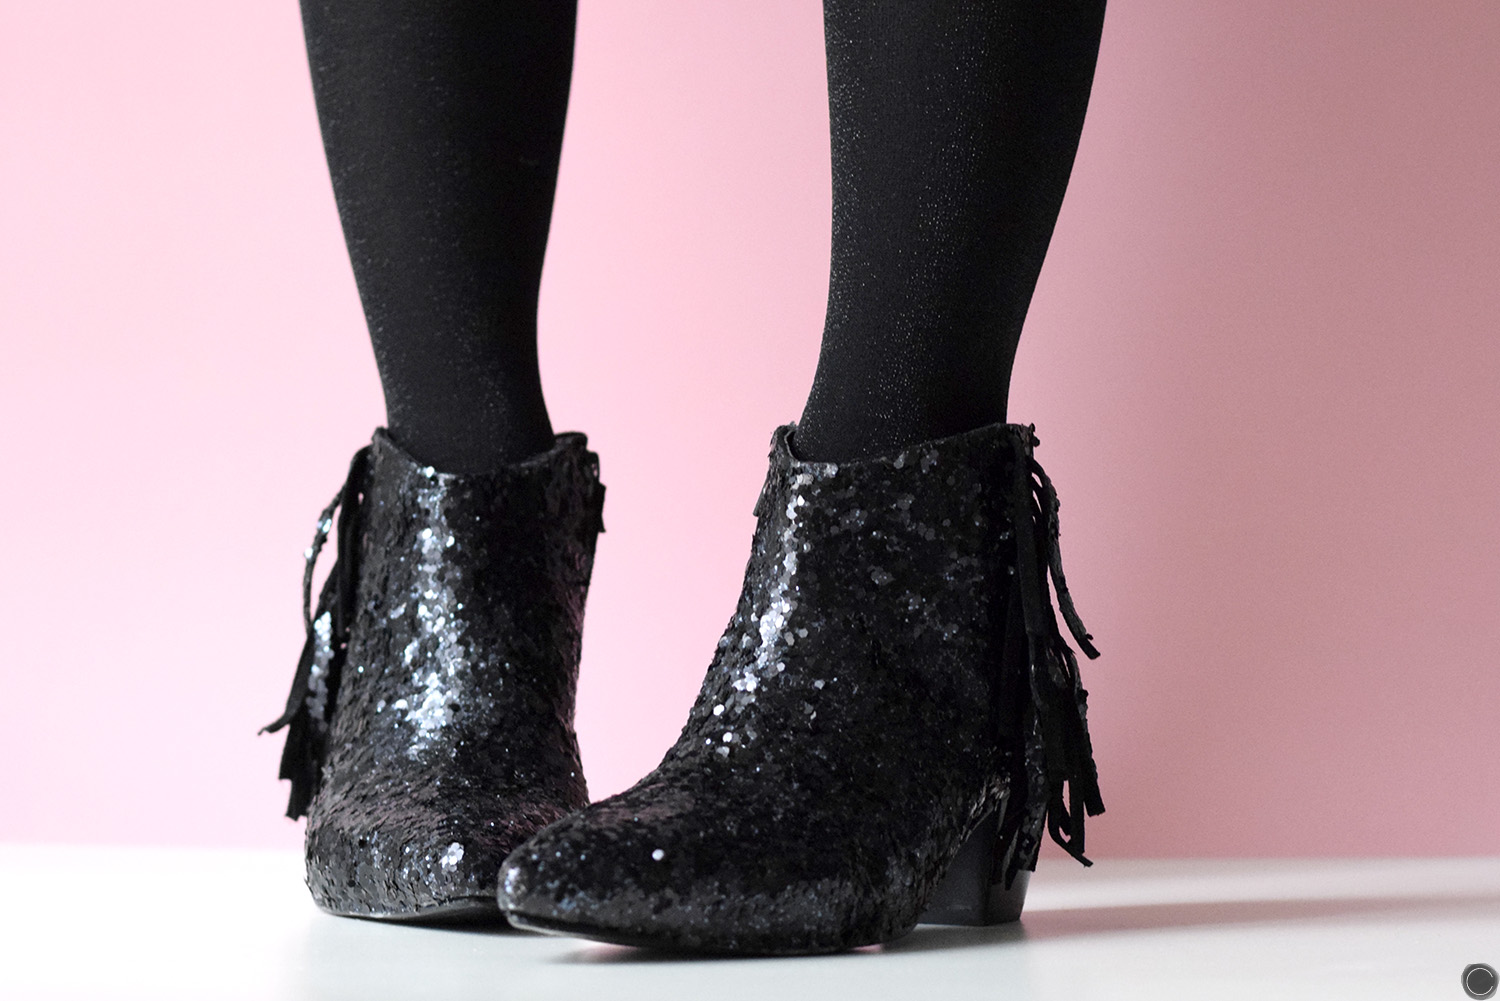 DIY CHAUSSURES PAILLETTES www.cbyclemence.com 01